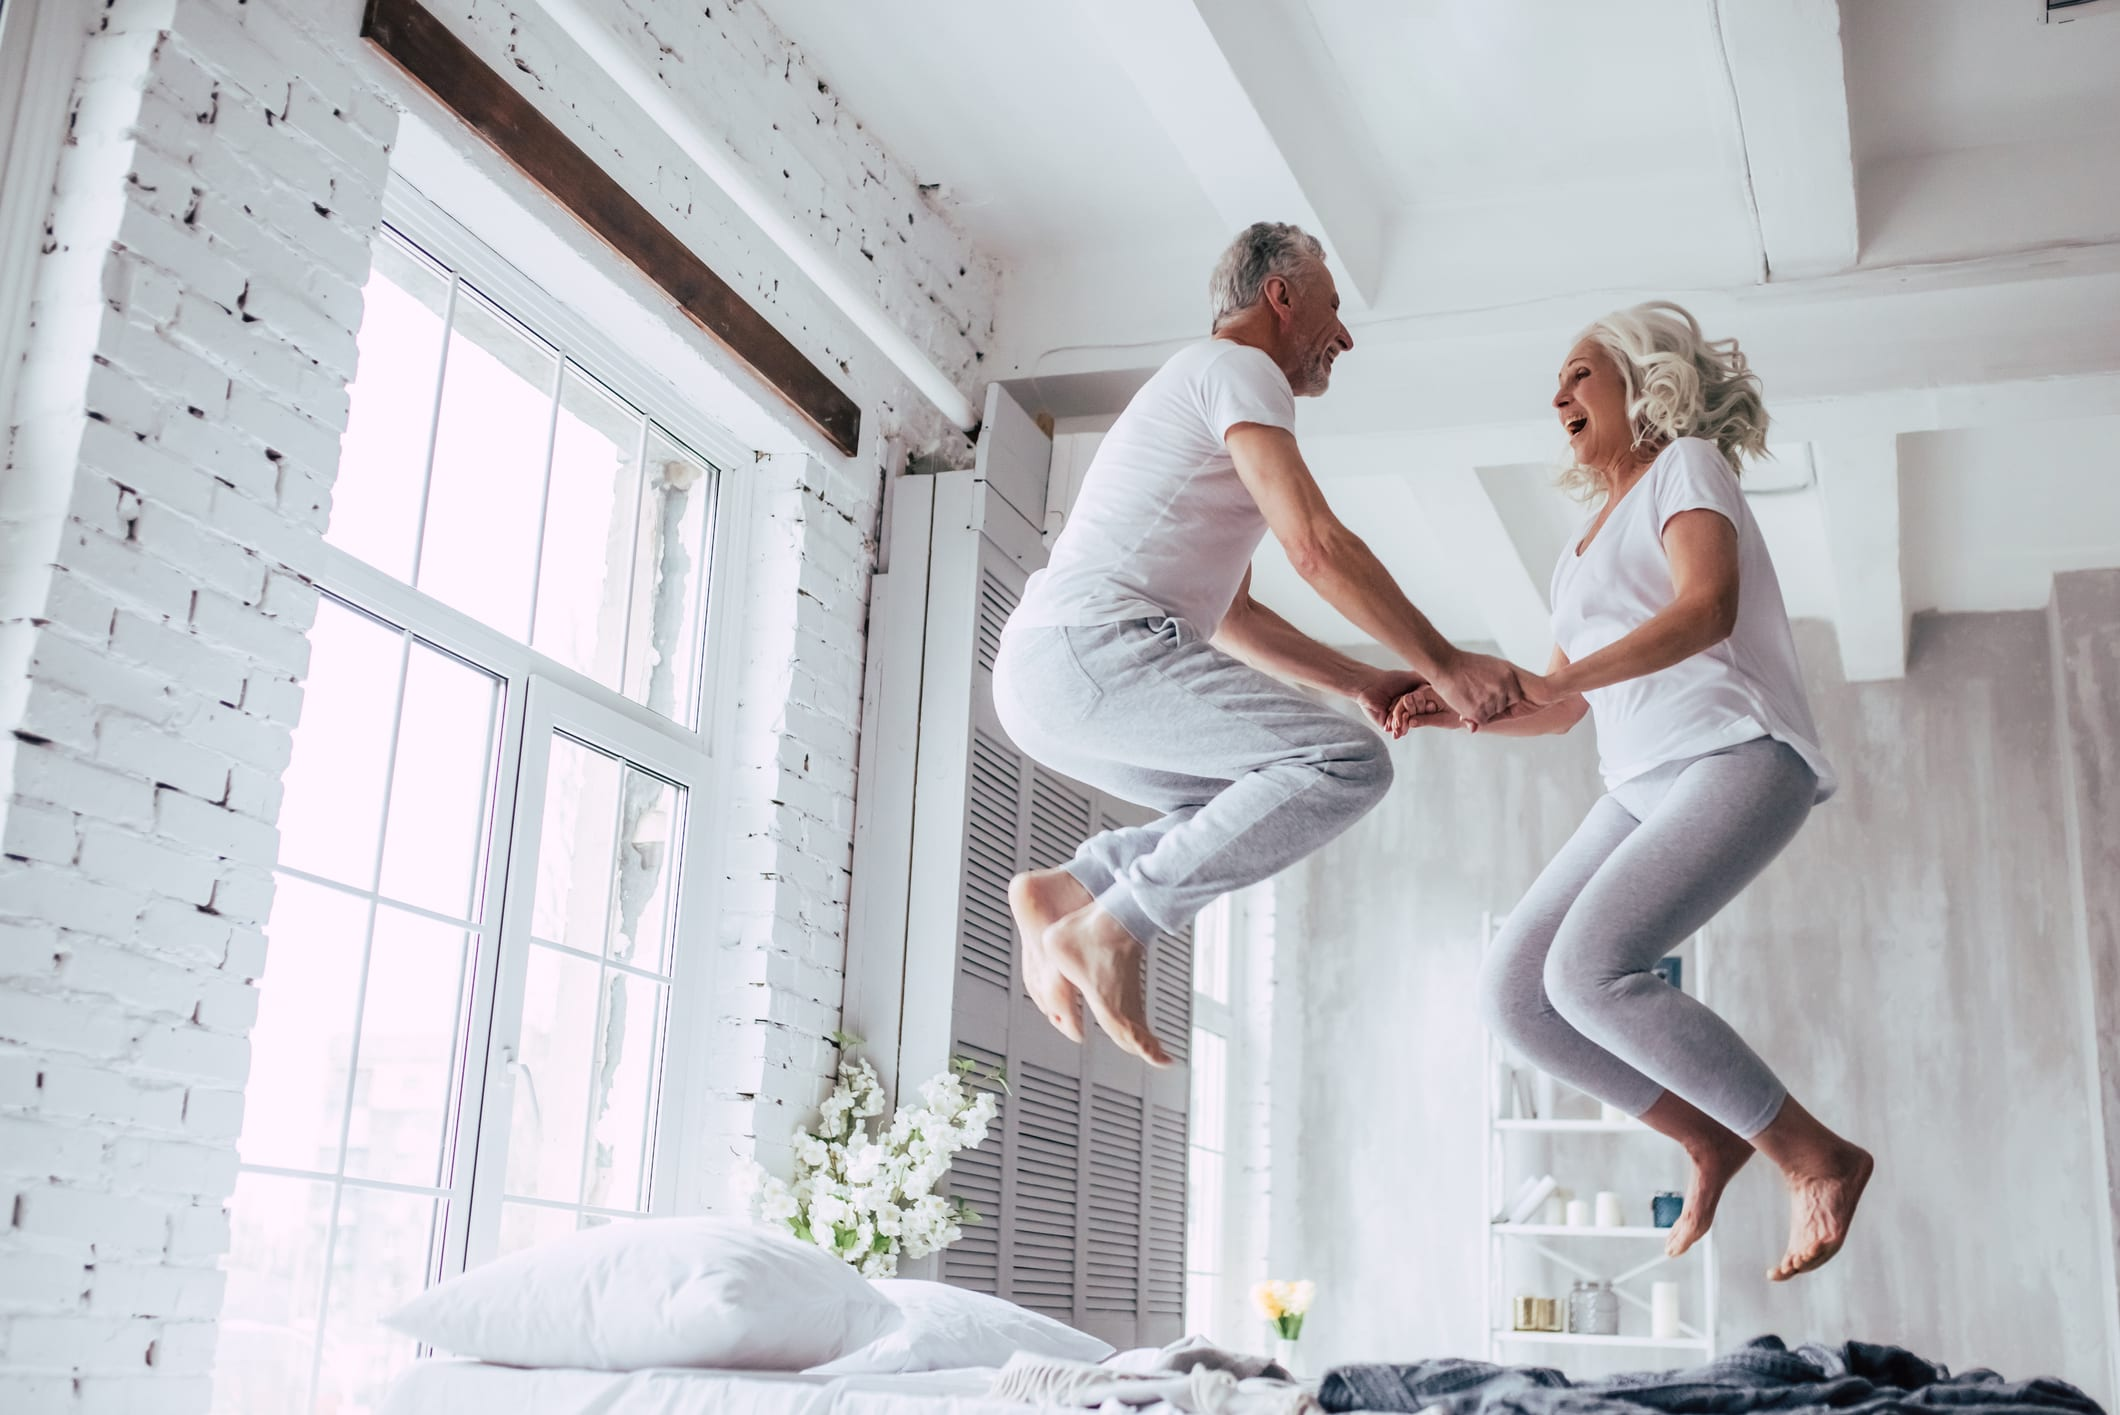 wealth management that makes you want to jump up and down on your bed